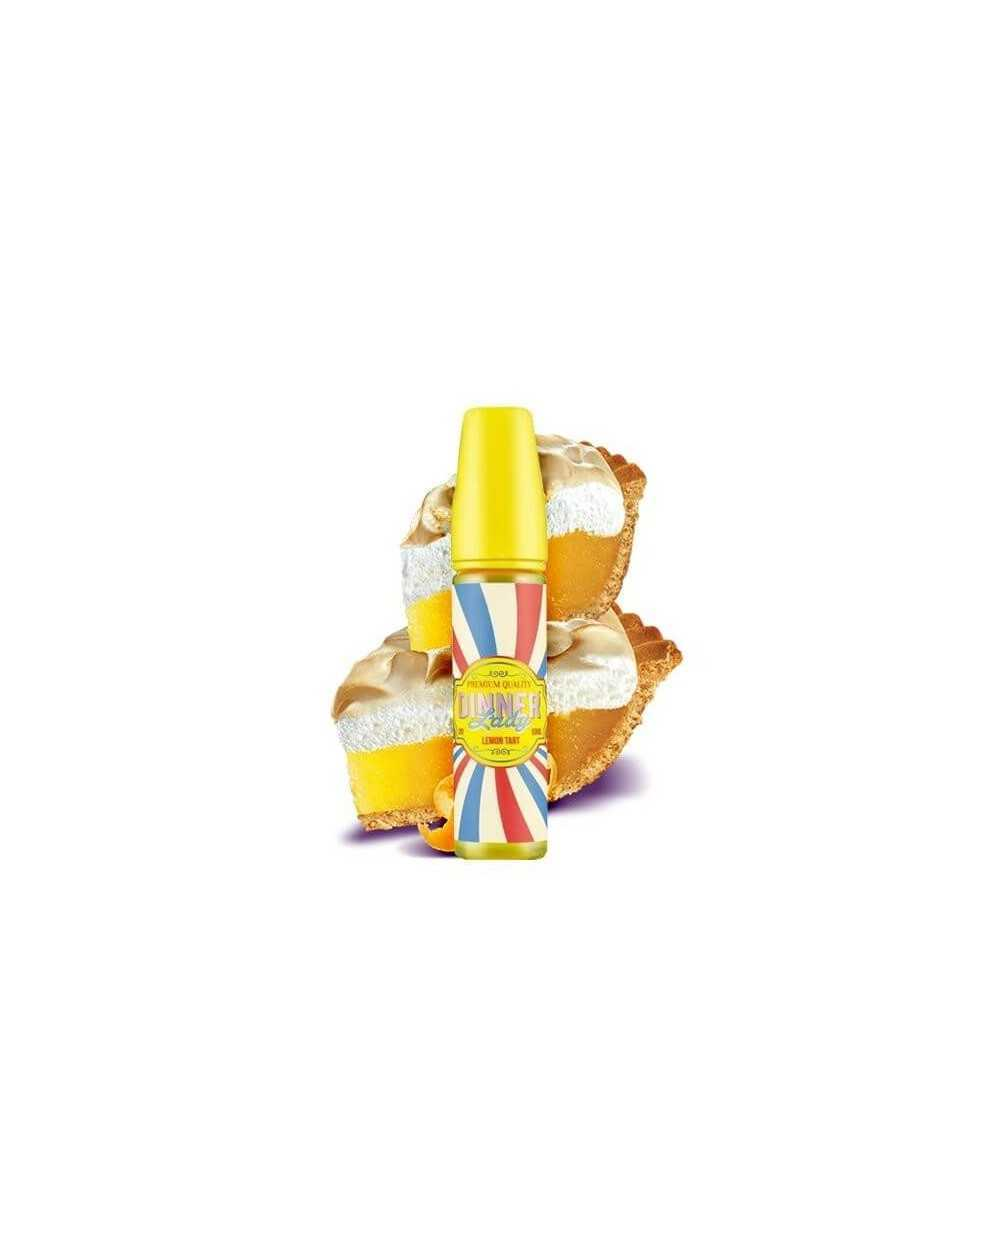 Lemon Tart 50ml - Dinner Lady Desserts-1